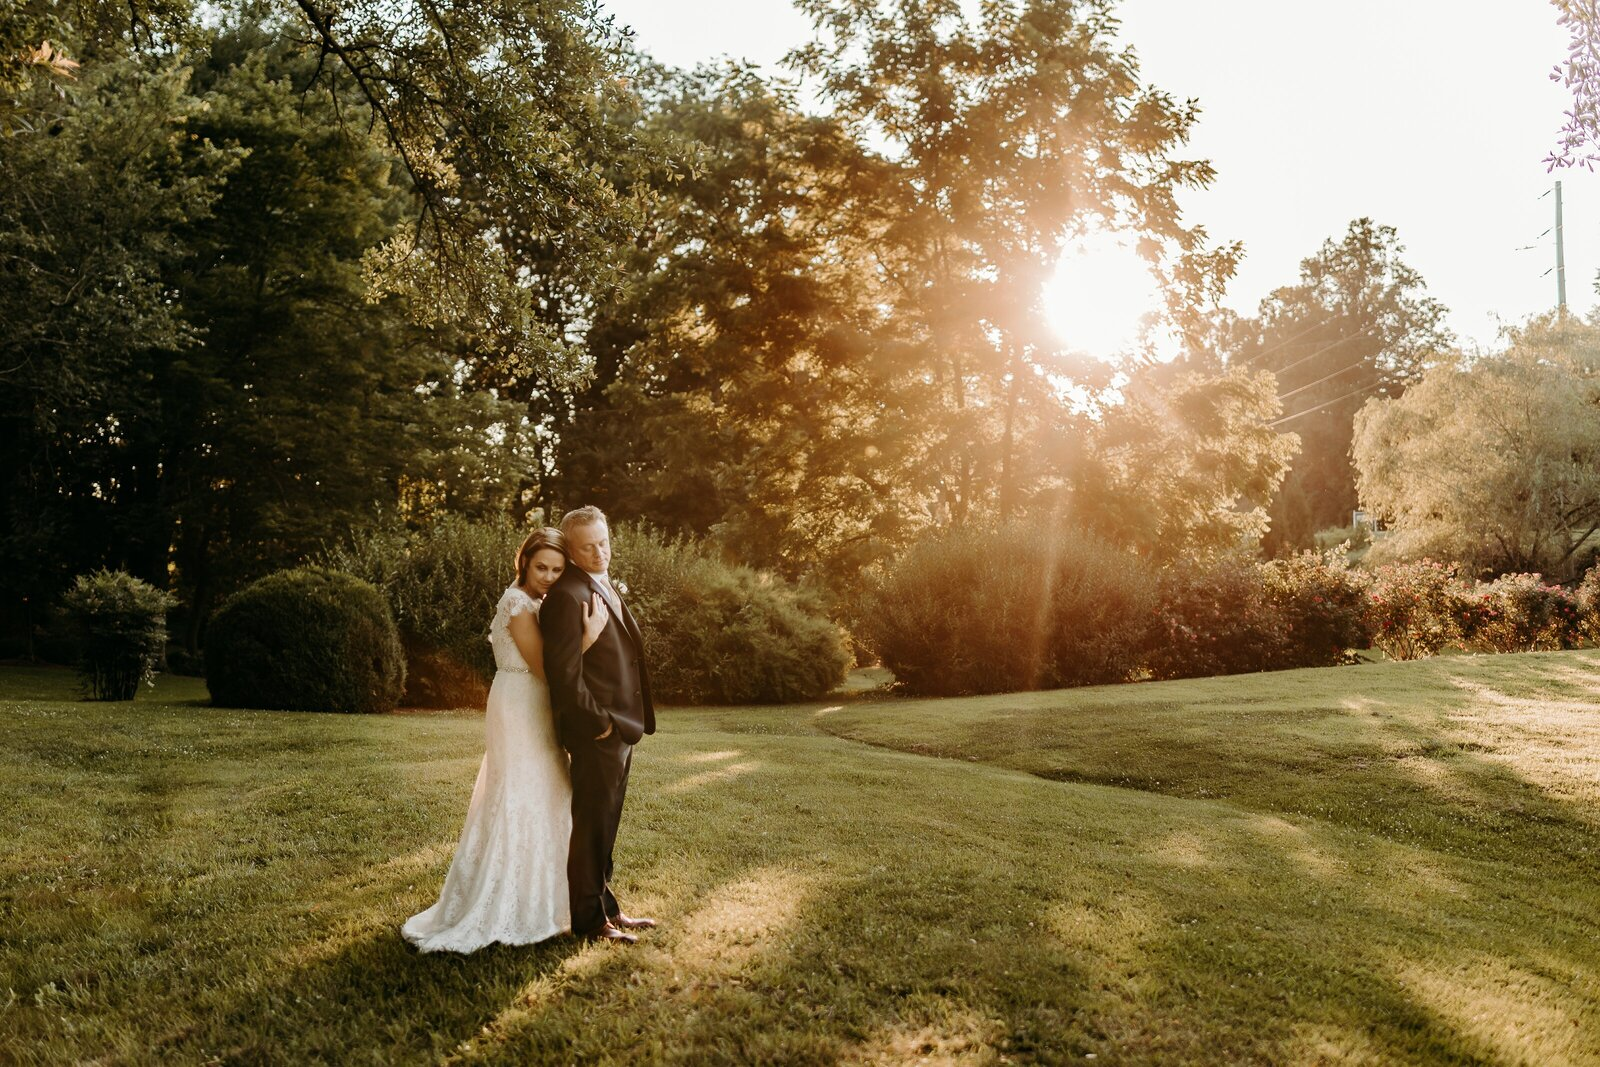 J.Michelle Photography photographs bride and groom sunset portrait